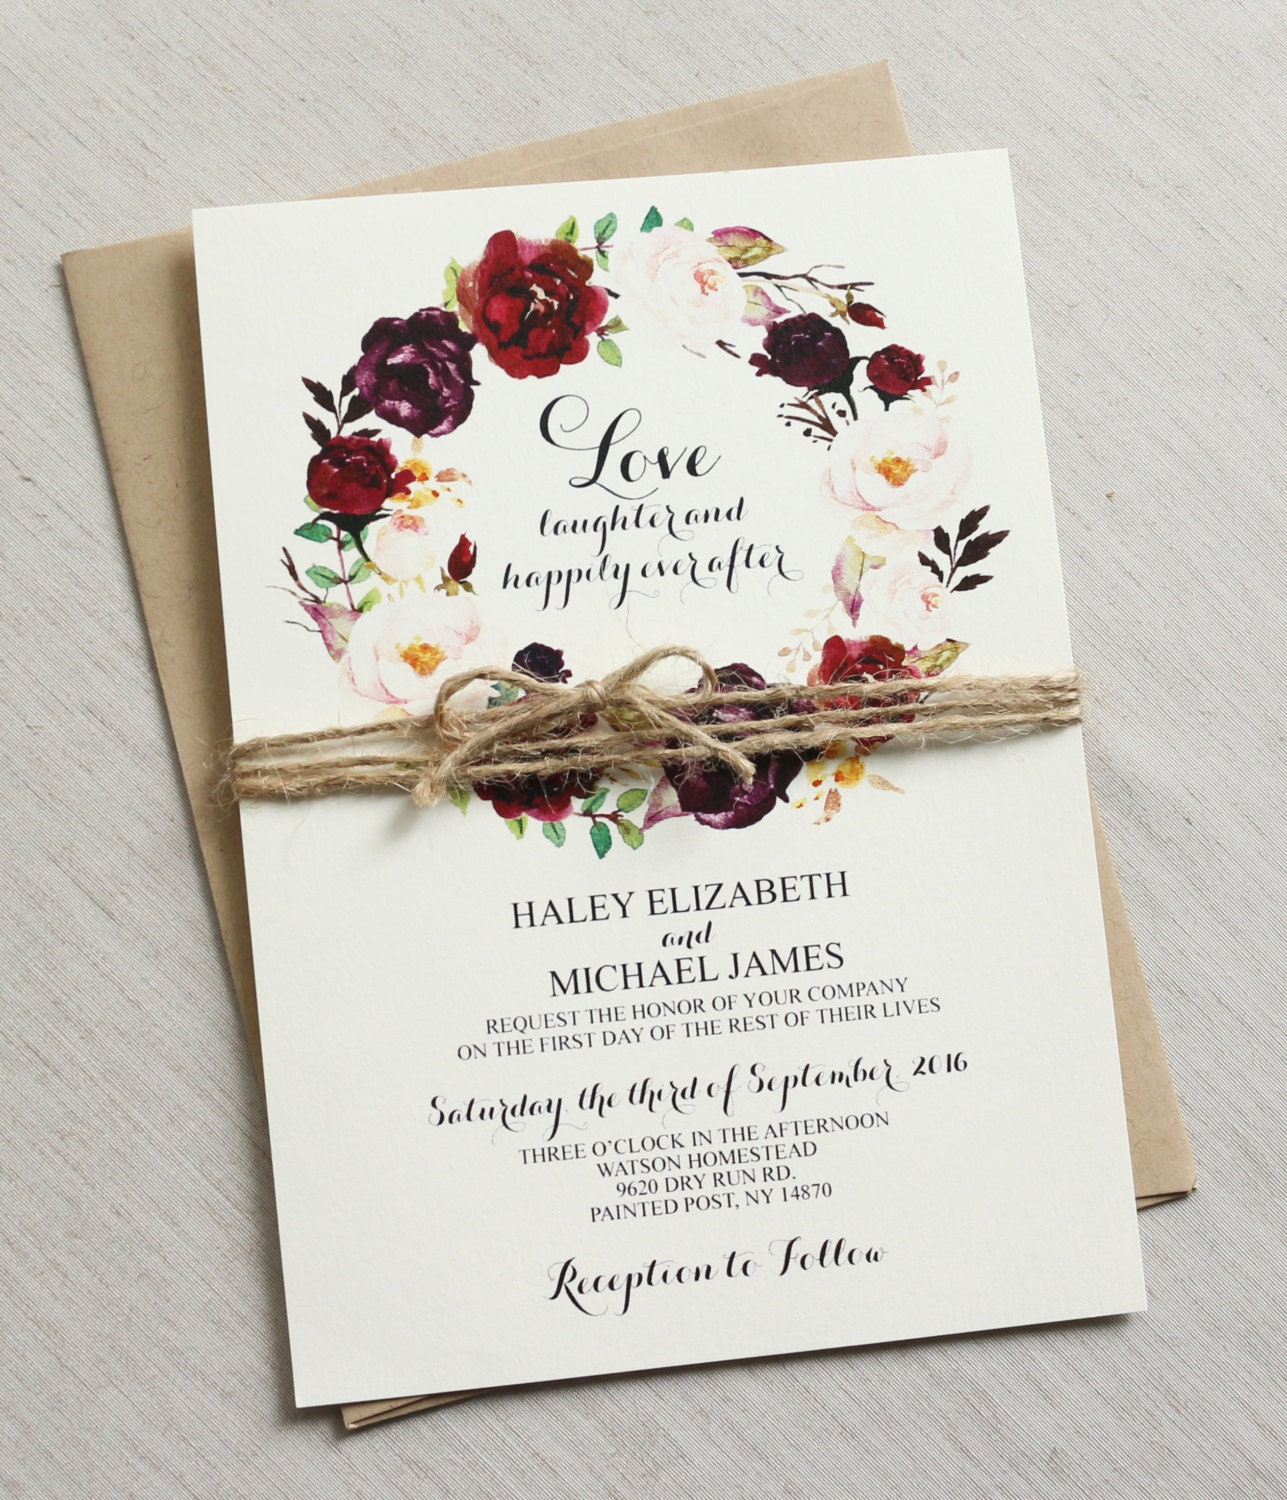 Wedding Images For Invitations: Rustic Wedding Invitation Burgundy Wedding Invitation